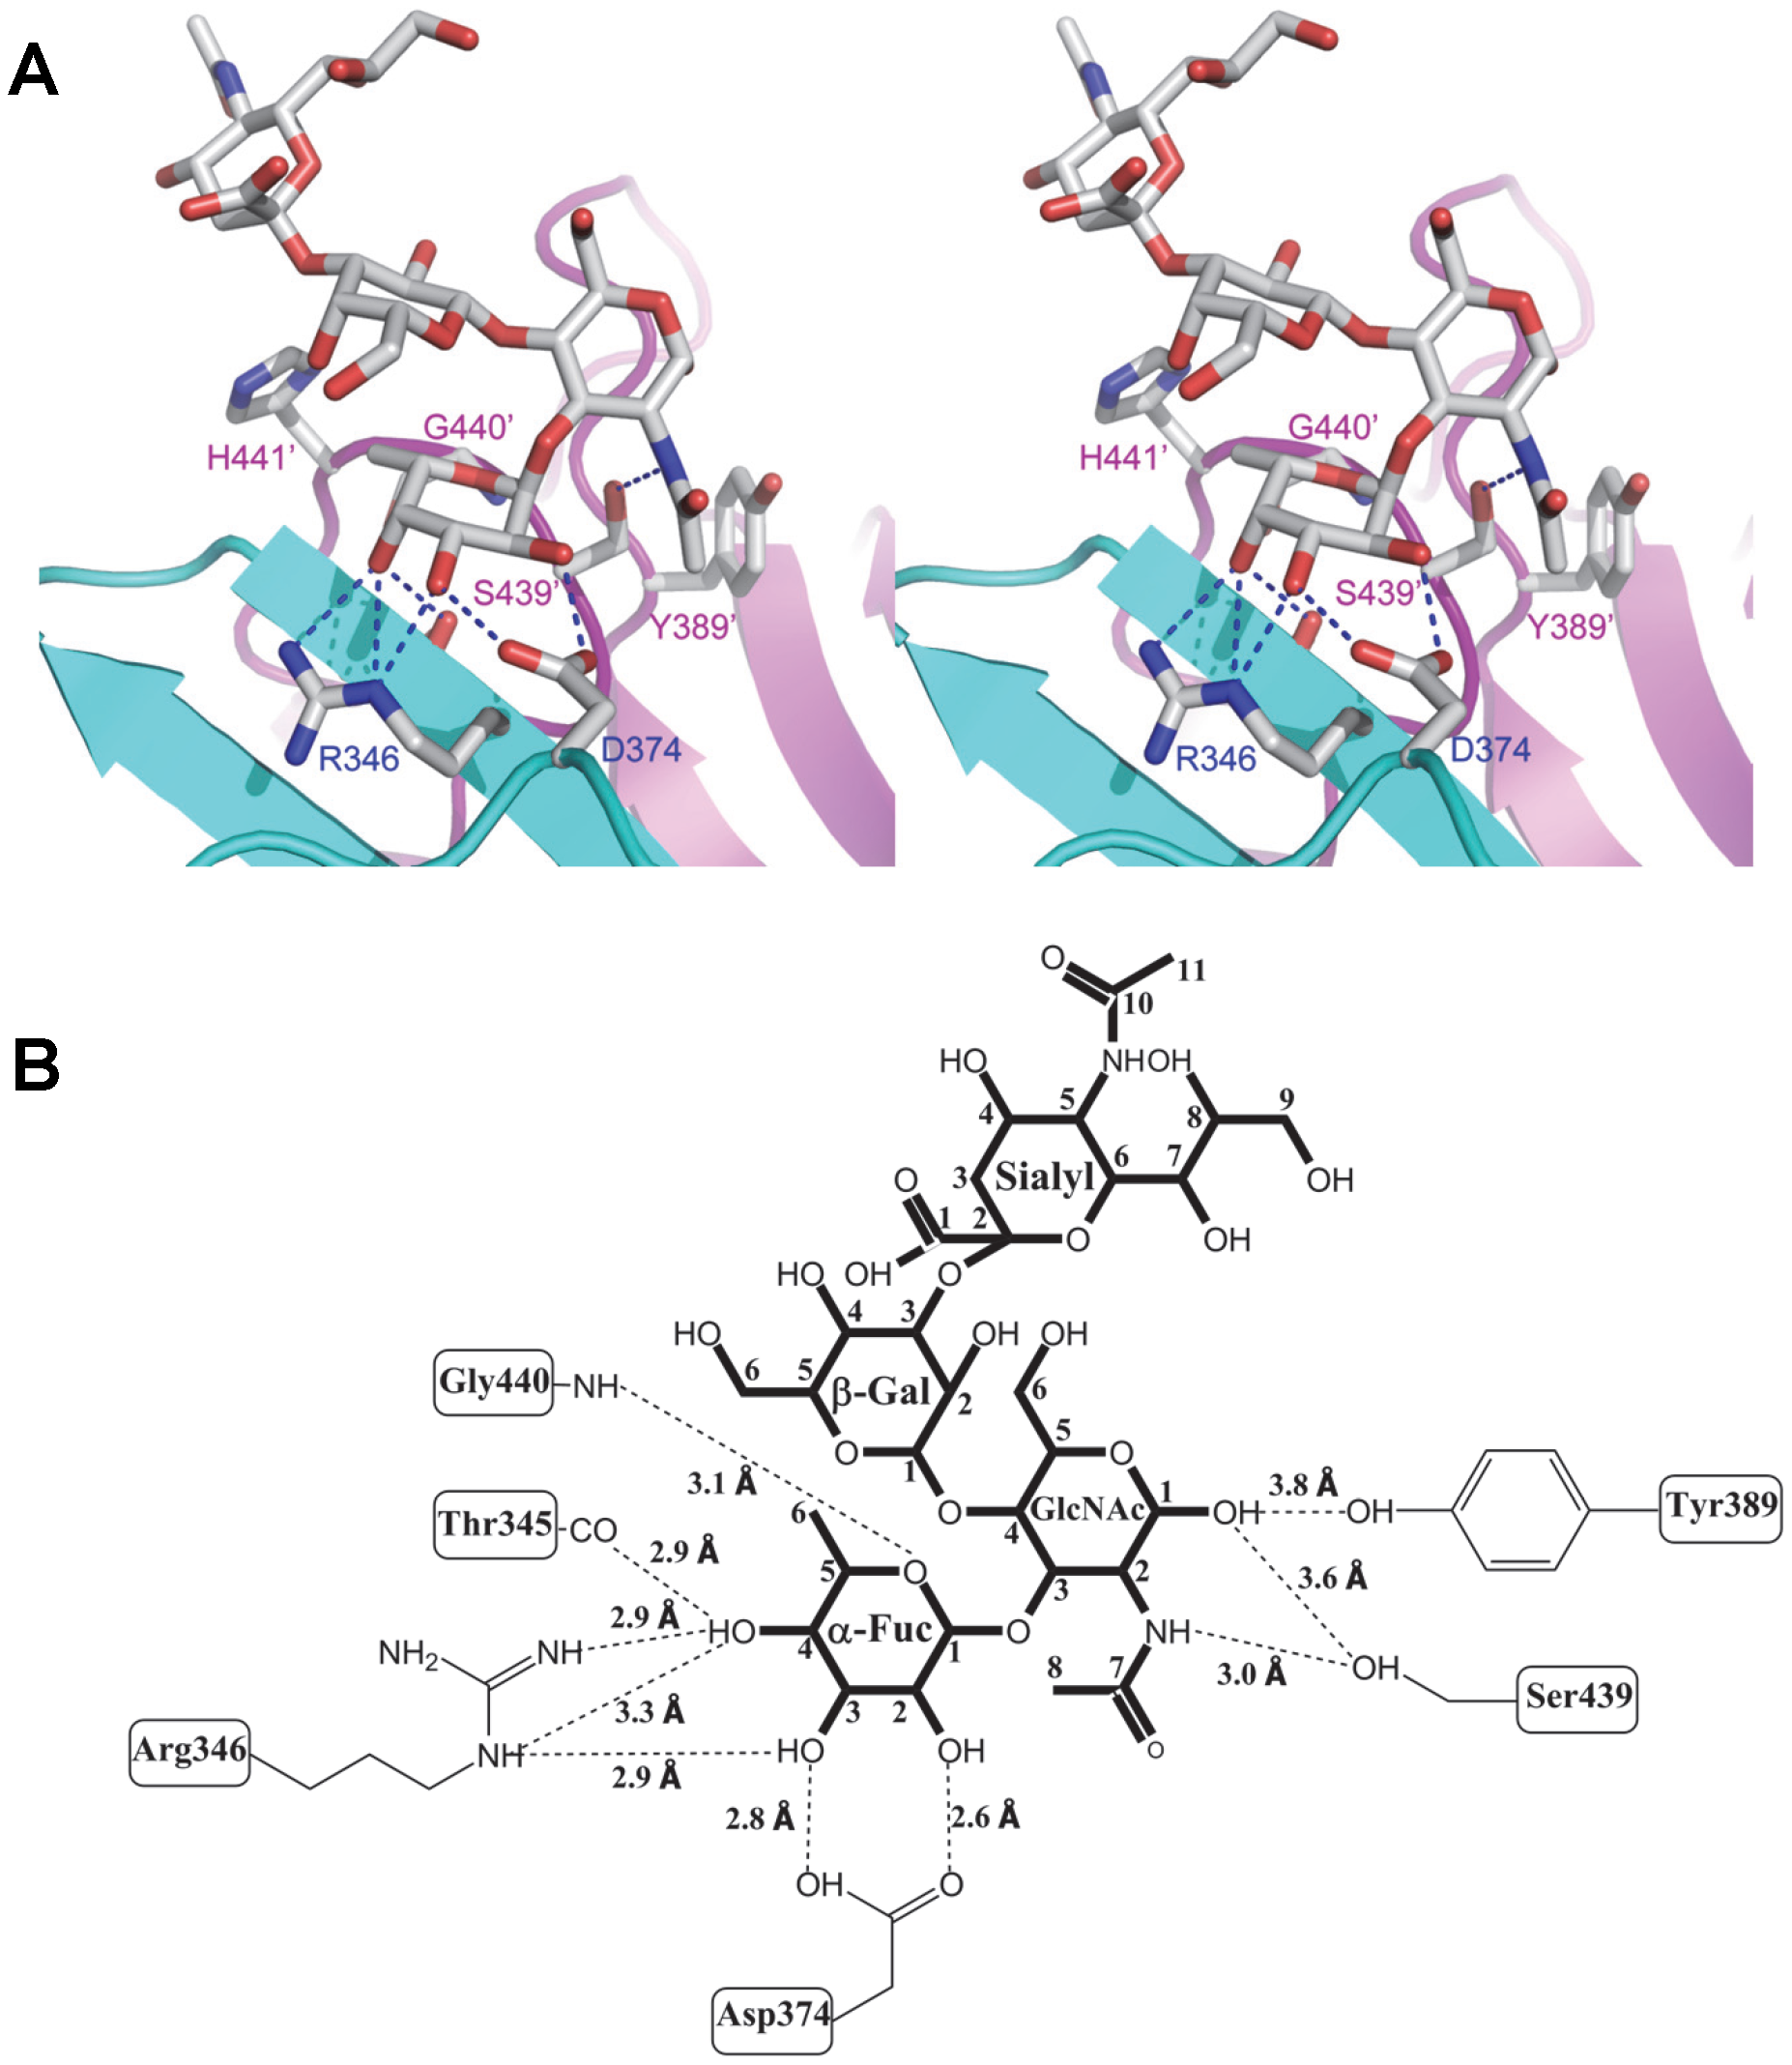 Extensive interaction network between VA207 P dimer and 3′ sialyl-Lewis X tetrasaccharide.